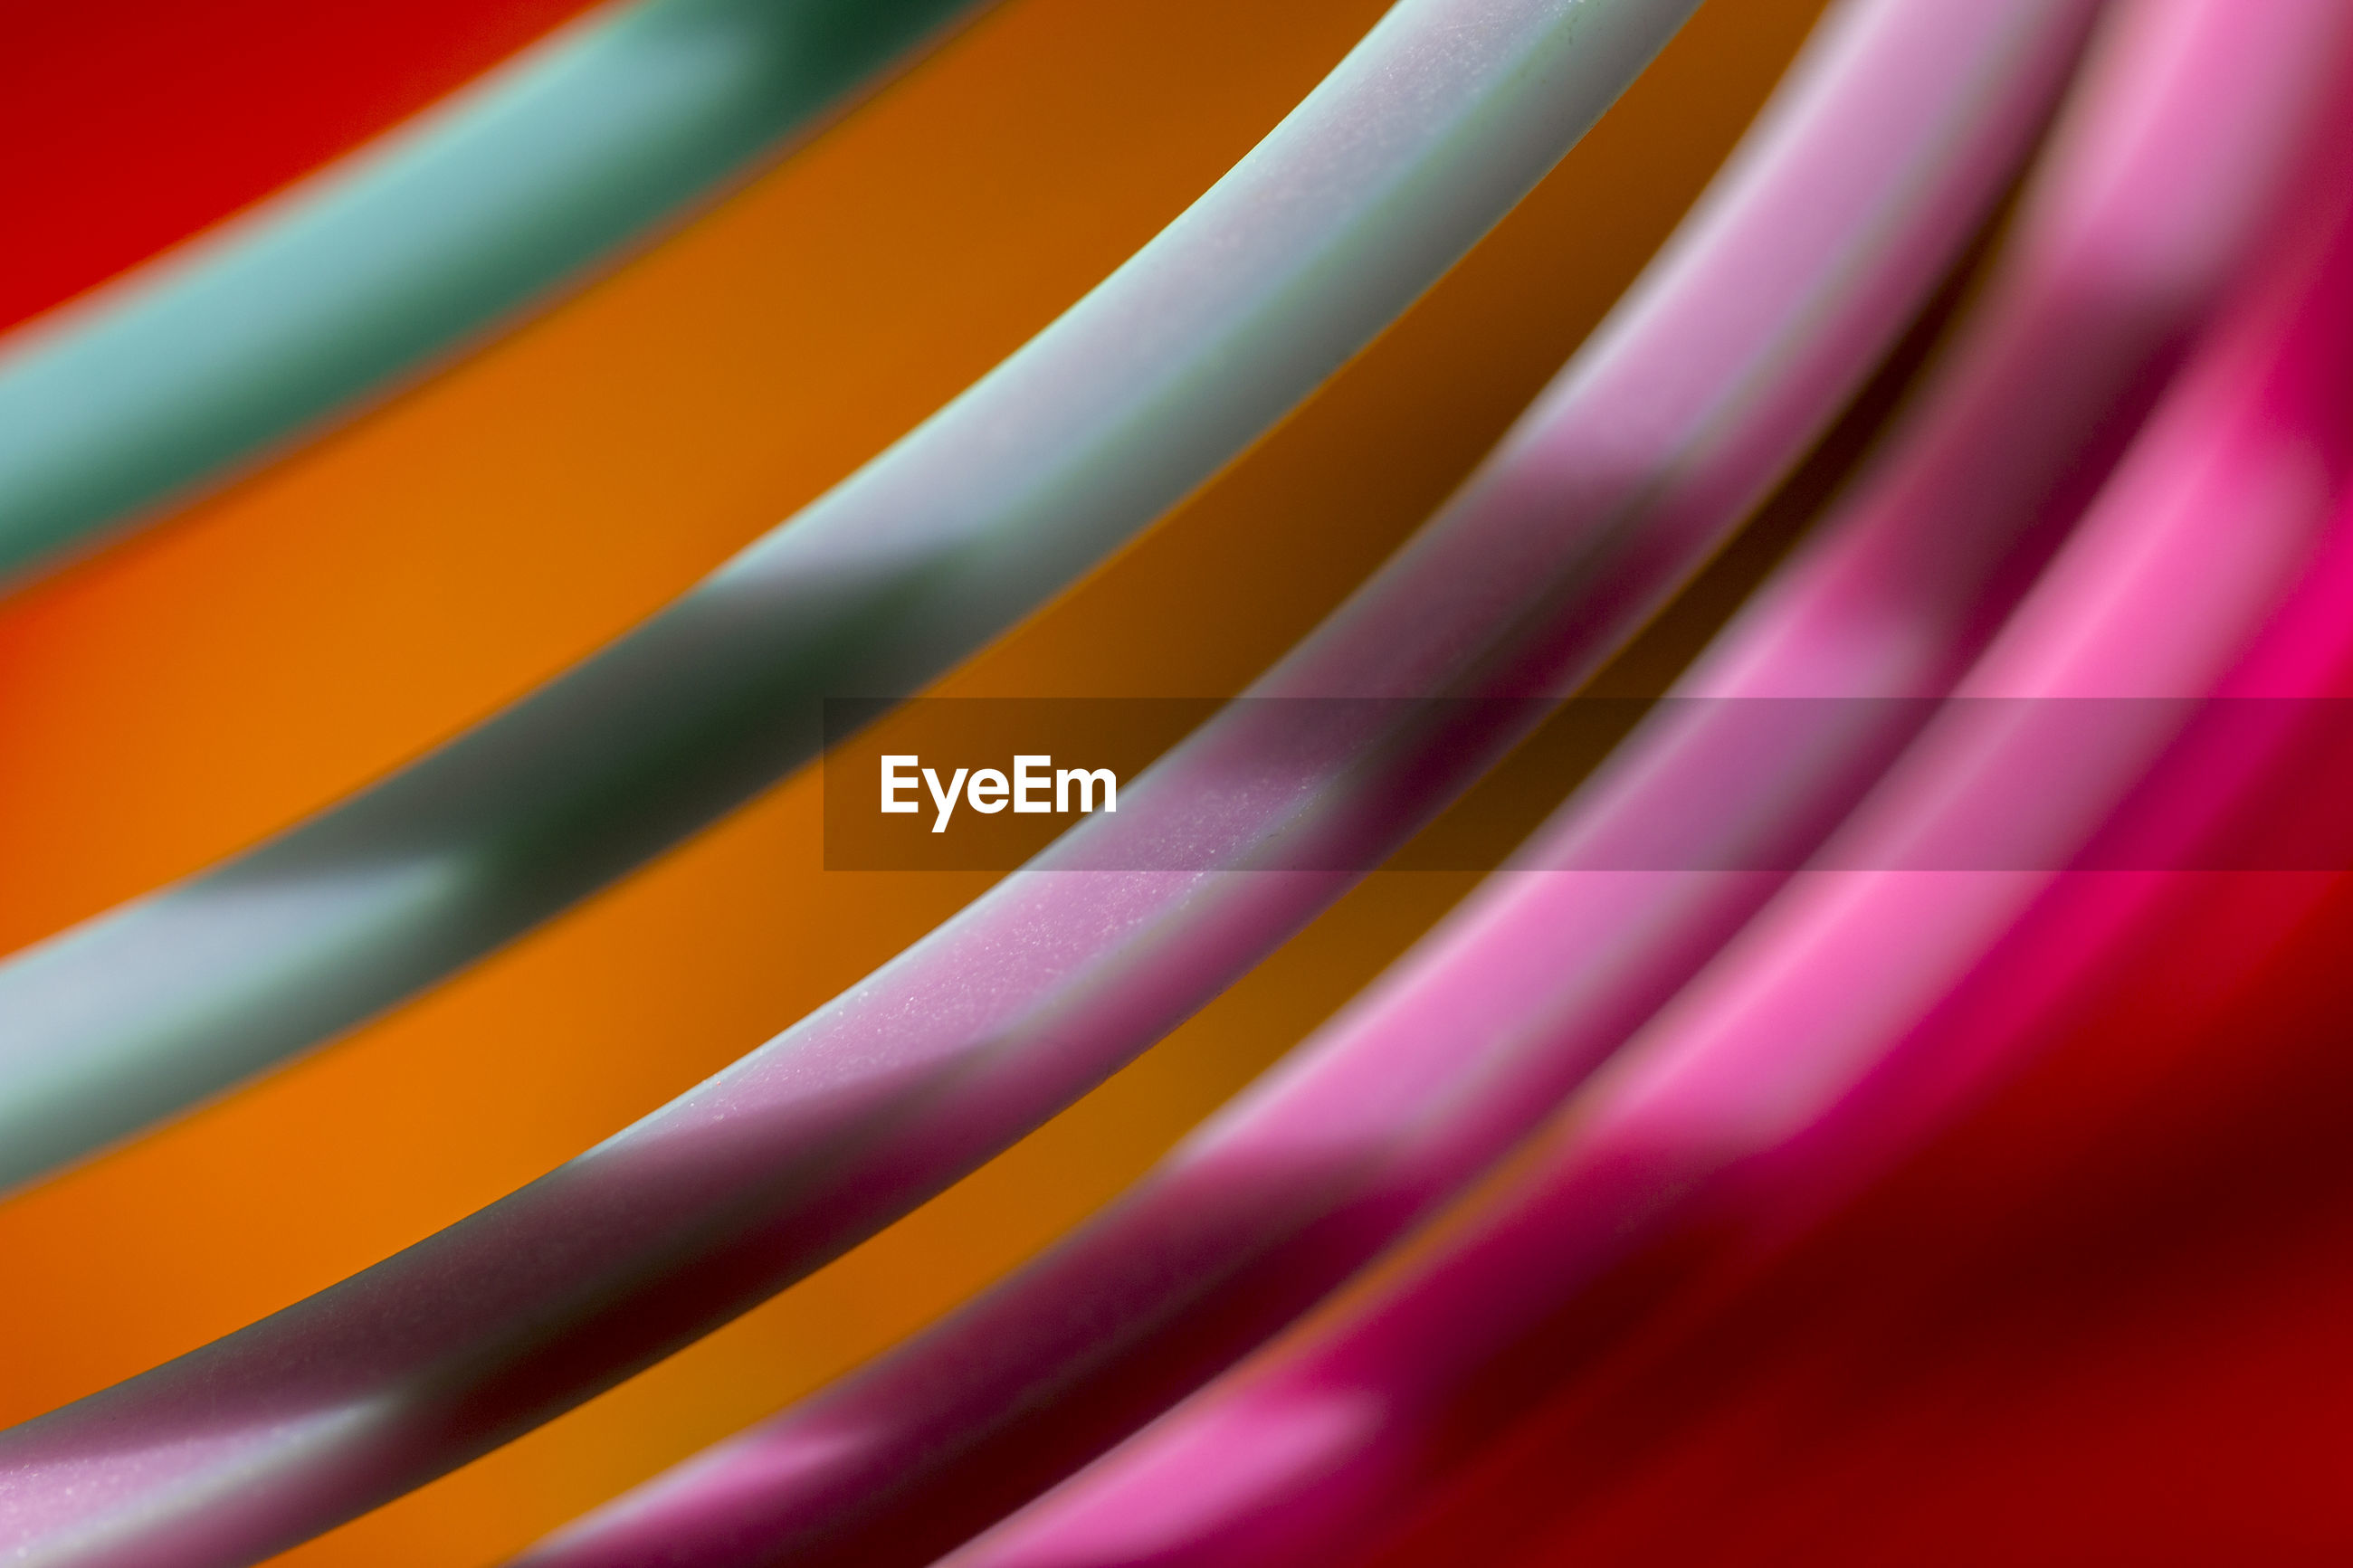 Full frame shot of colorful coiled object